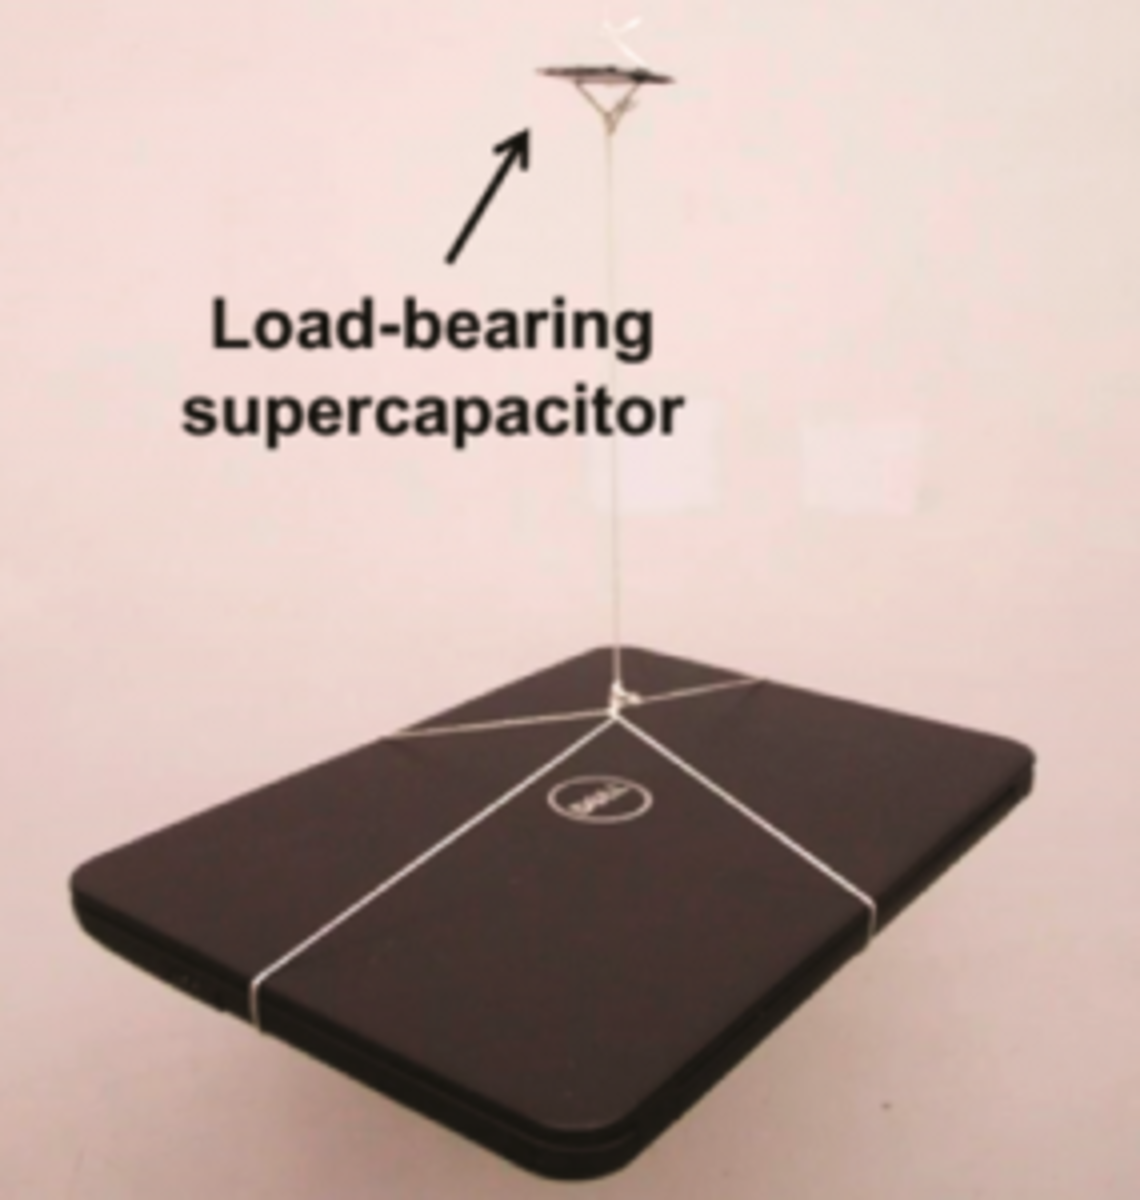 load-bearing-supercapacitor-285x300